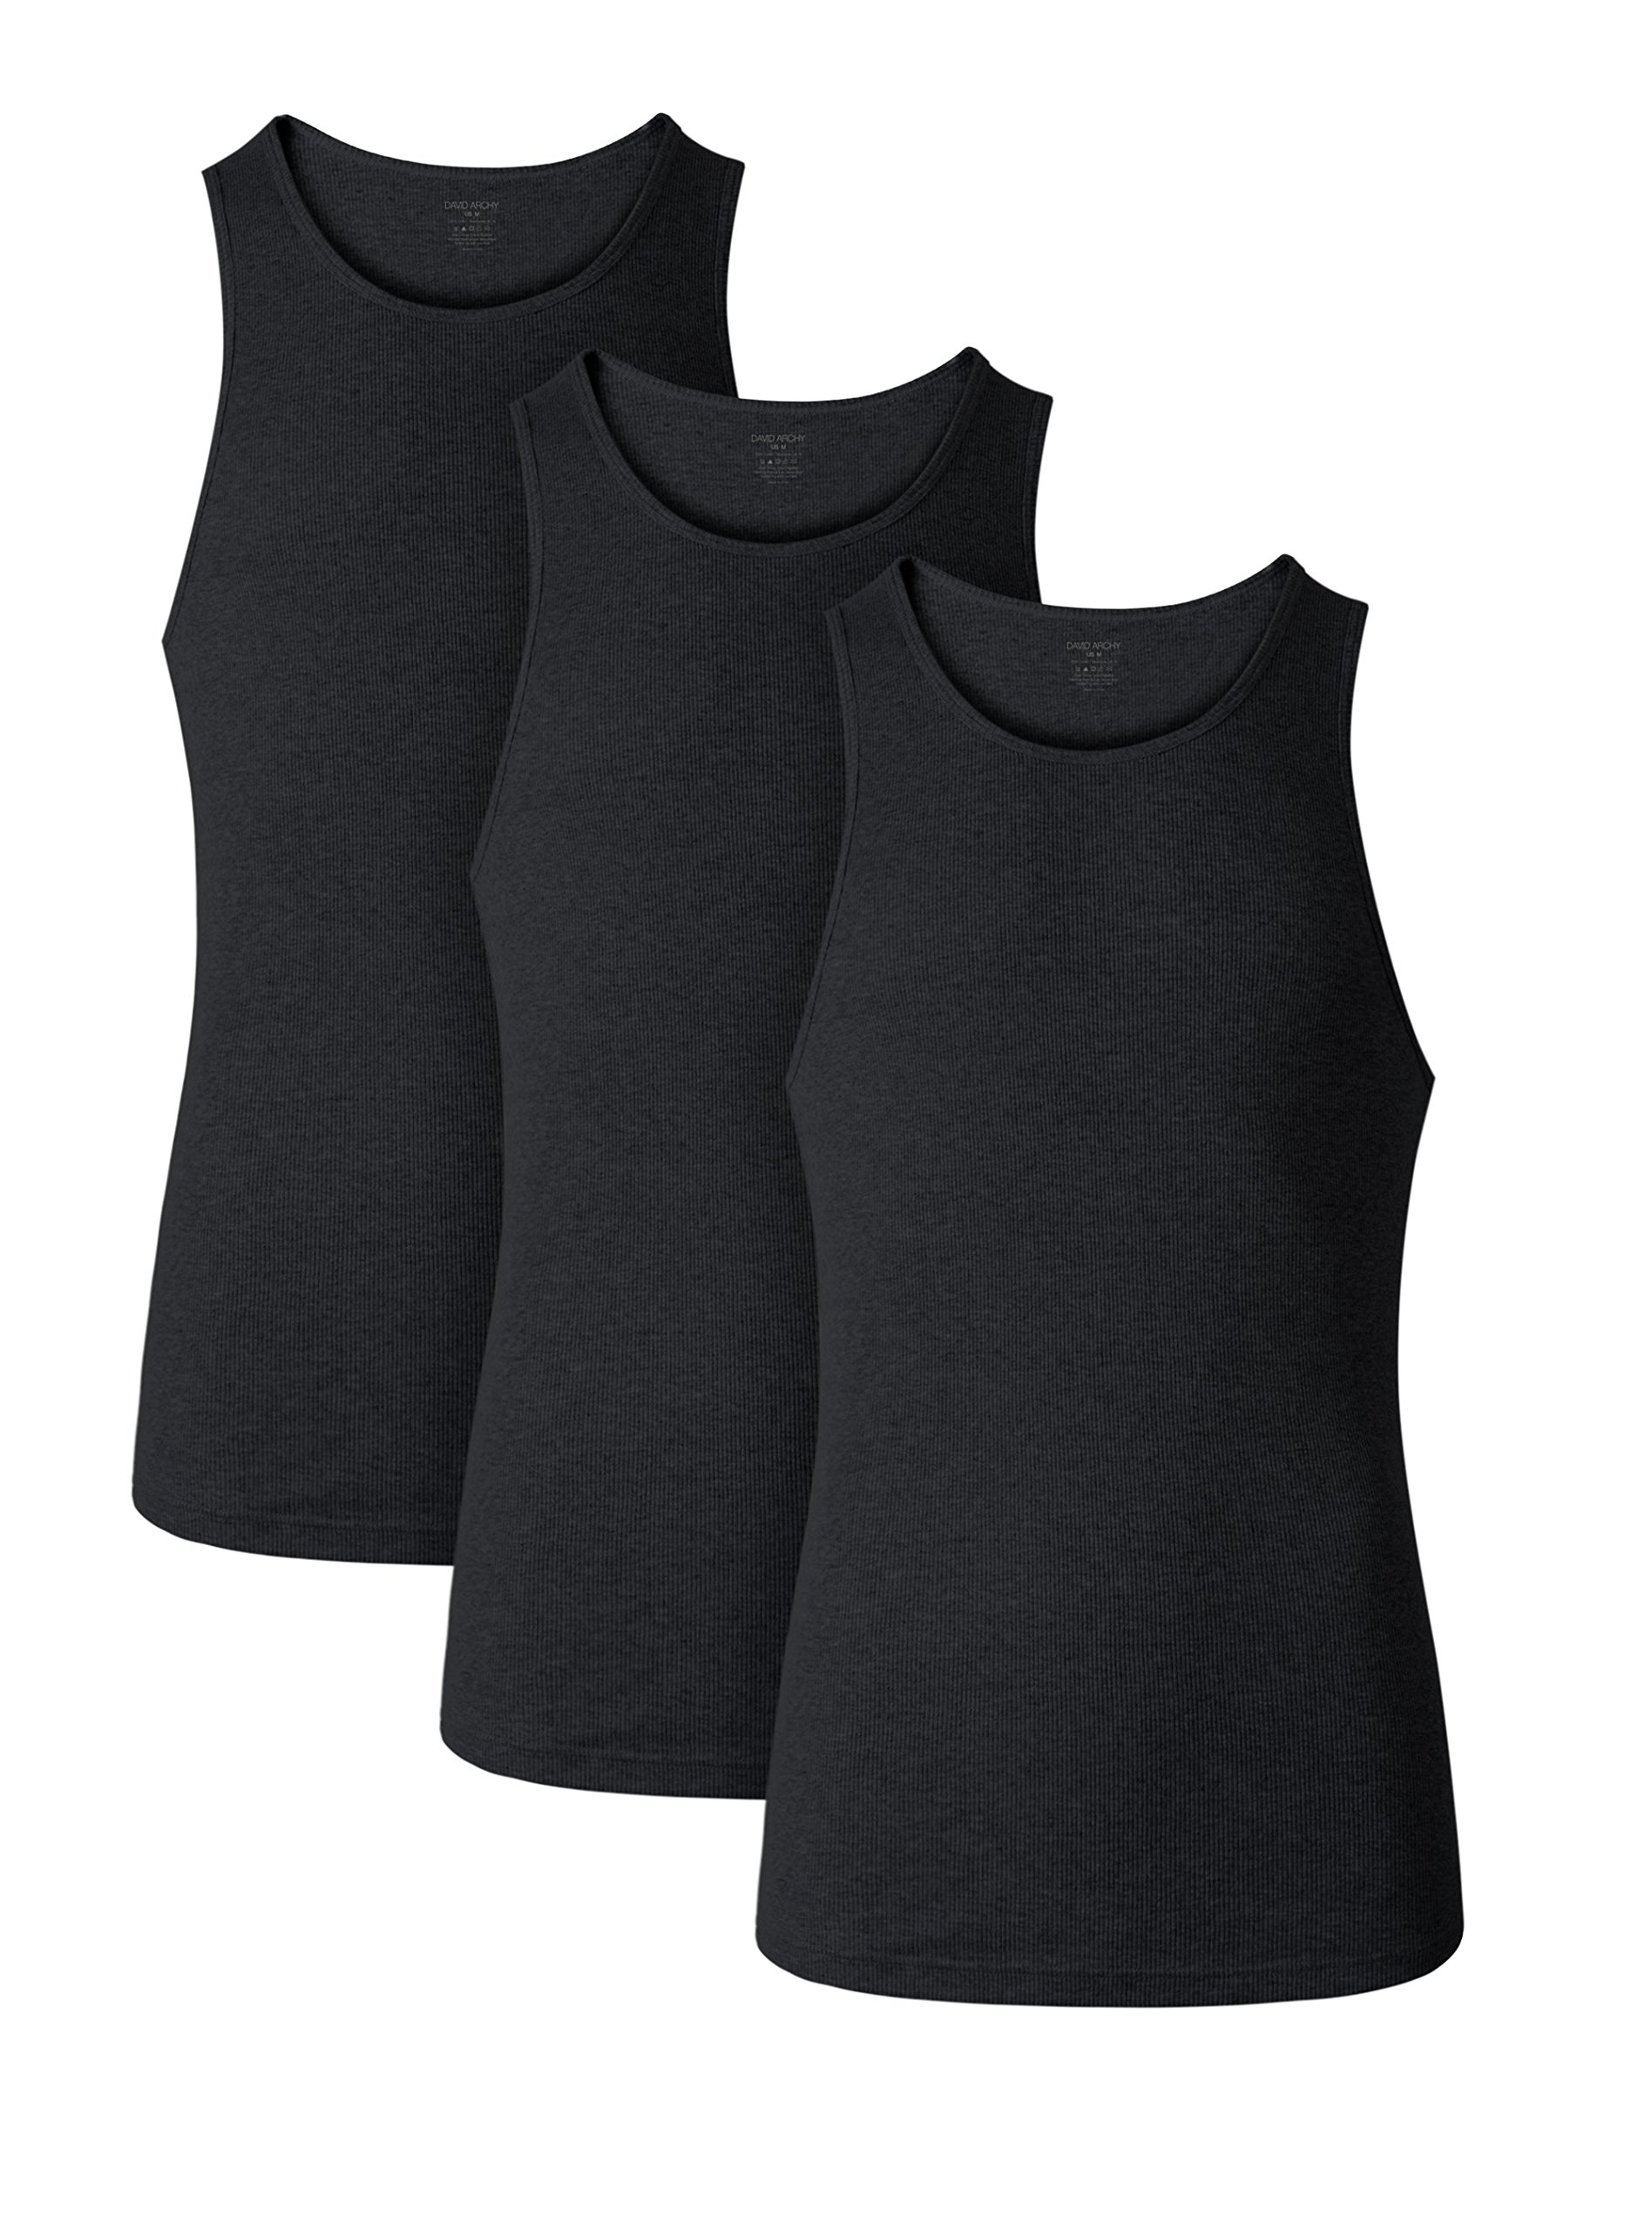 David Archy Men's 3 Pack Cotton Rib Tank Top A-Shirts Sleeveless Workout Undershirts(Black,S)